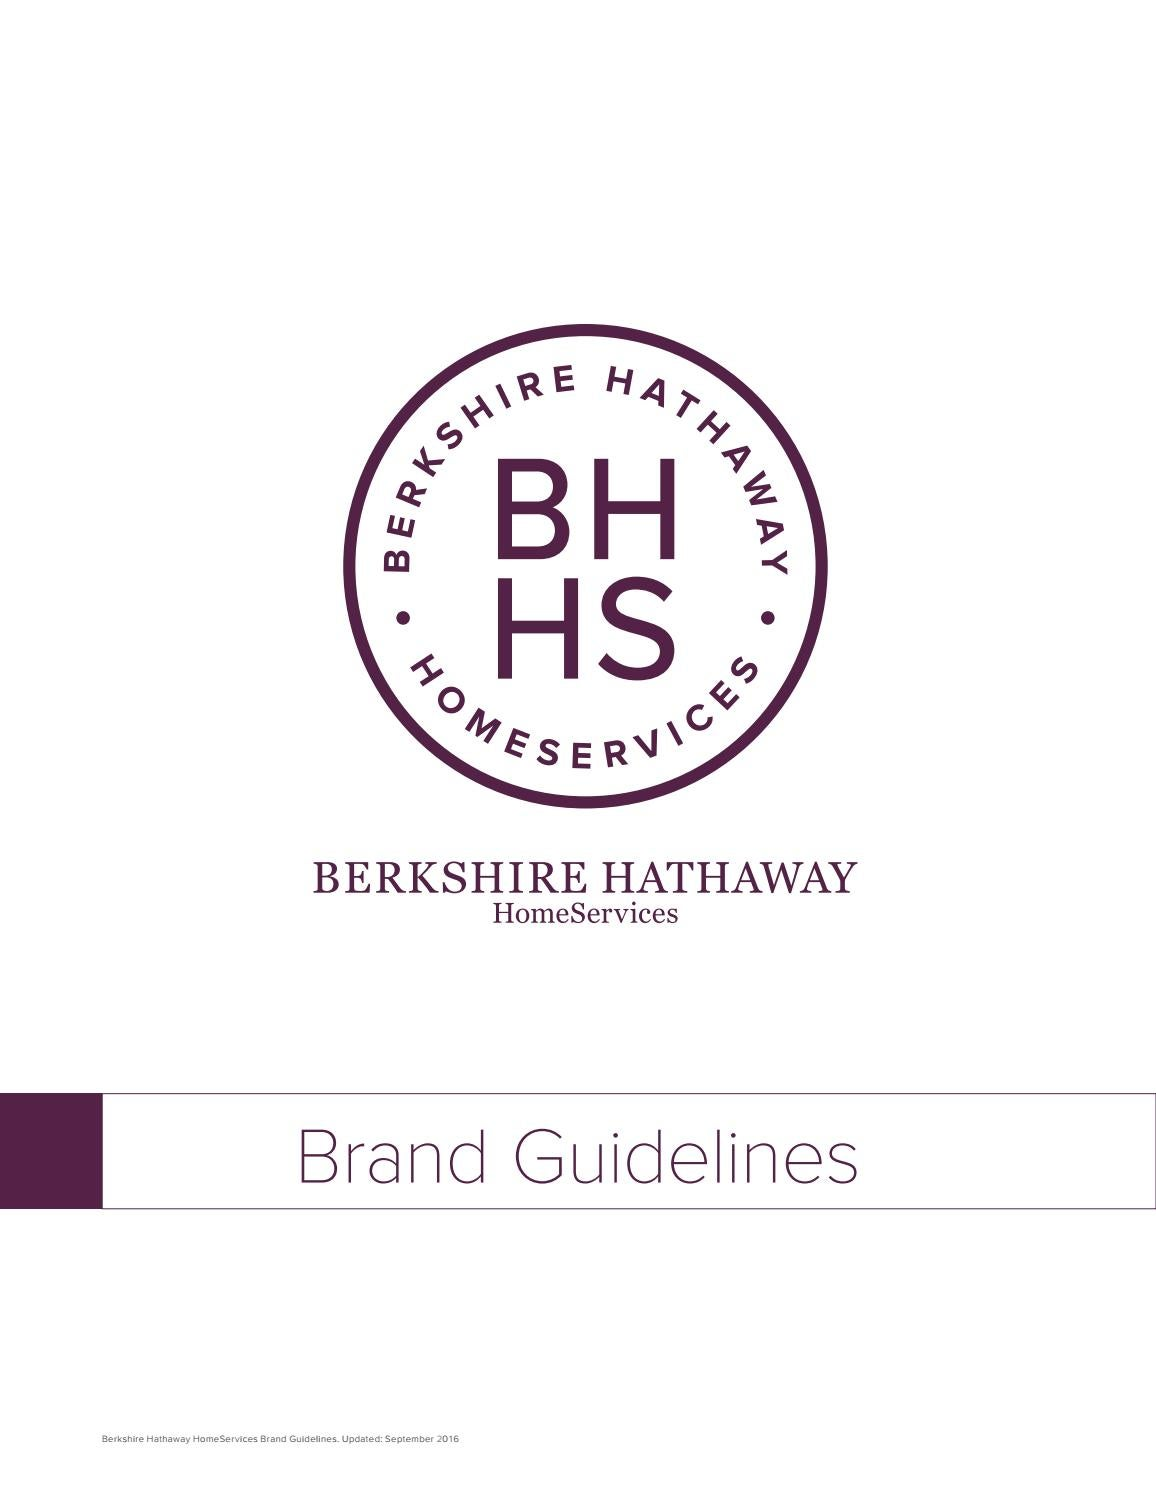 berkshire hathaway homeservices brand guidelines 4.2017 by